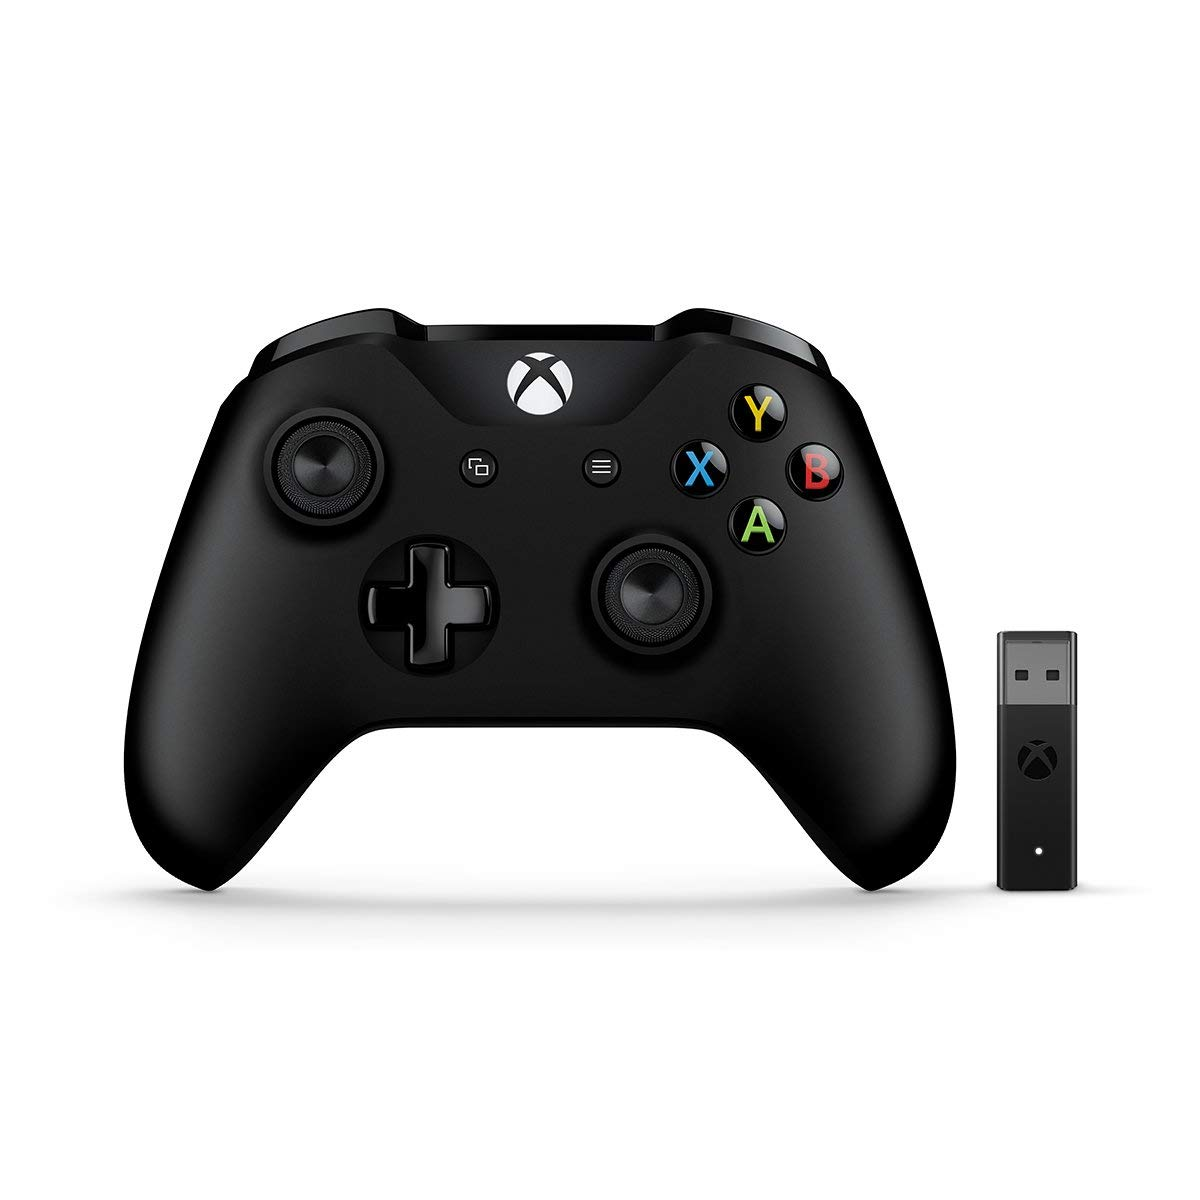 "Get an Xbox Wireless Controller + Wireless Adapter for Windows 10 for $53.80 (Was $79.95)  <a href=""http://mjr.mn/RWN1I"" rel=""nofollow"" target=""_blank"" title=""http://mjr.mn/RWN1I"">mjr.mn/RWN1I</a> https://t.co/5bOqTKx0Fl."